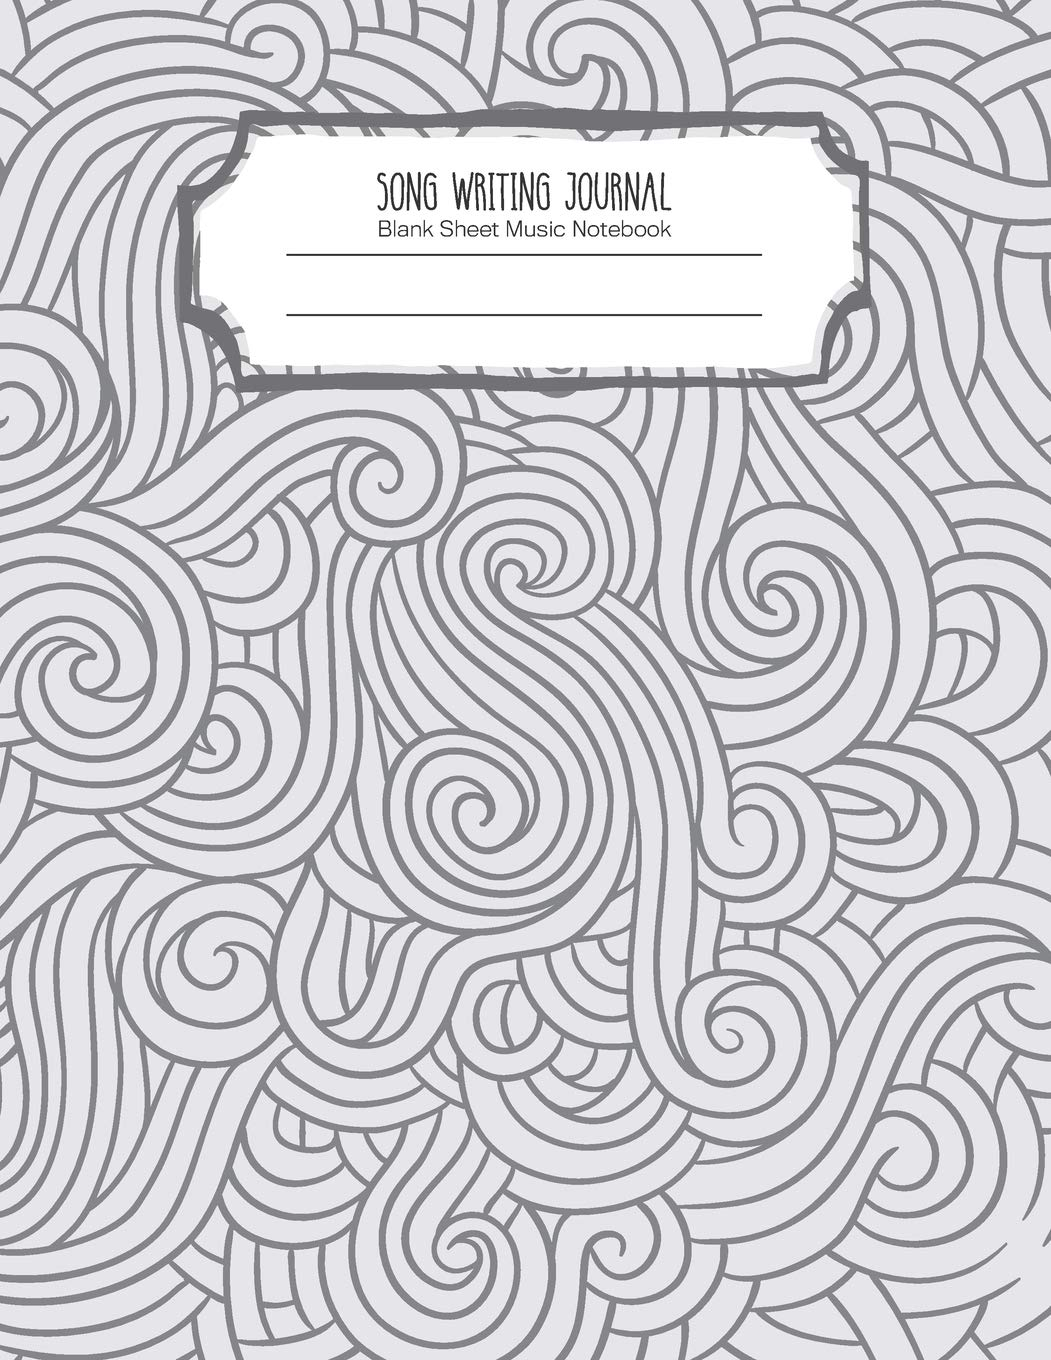 Song Writing Journal: Lined/Ruled Paper And Staff | Manuscript Paper For Notes - Lyrics And Music. For Musicians-Music Lovers-Students- Songwriting. Book Notebook Journal 100 Pages 8.5x11in